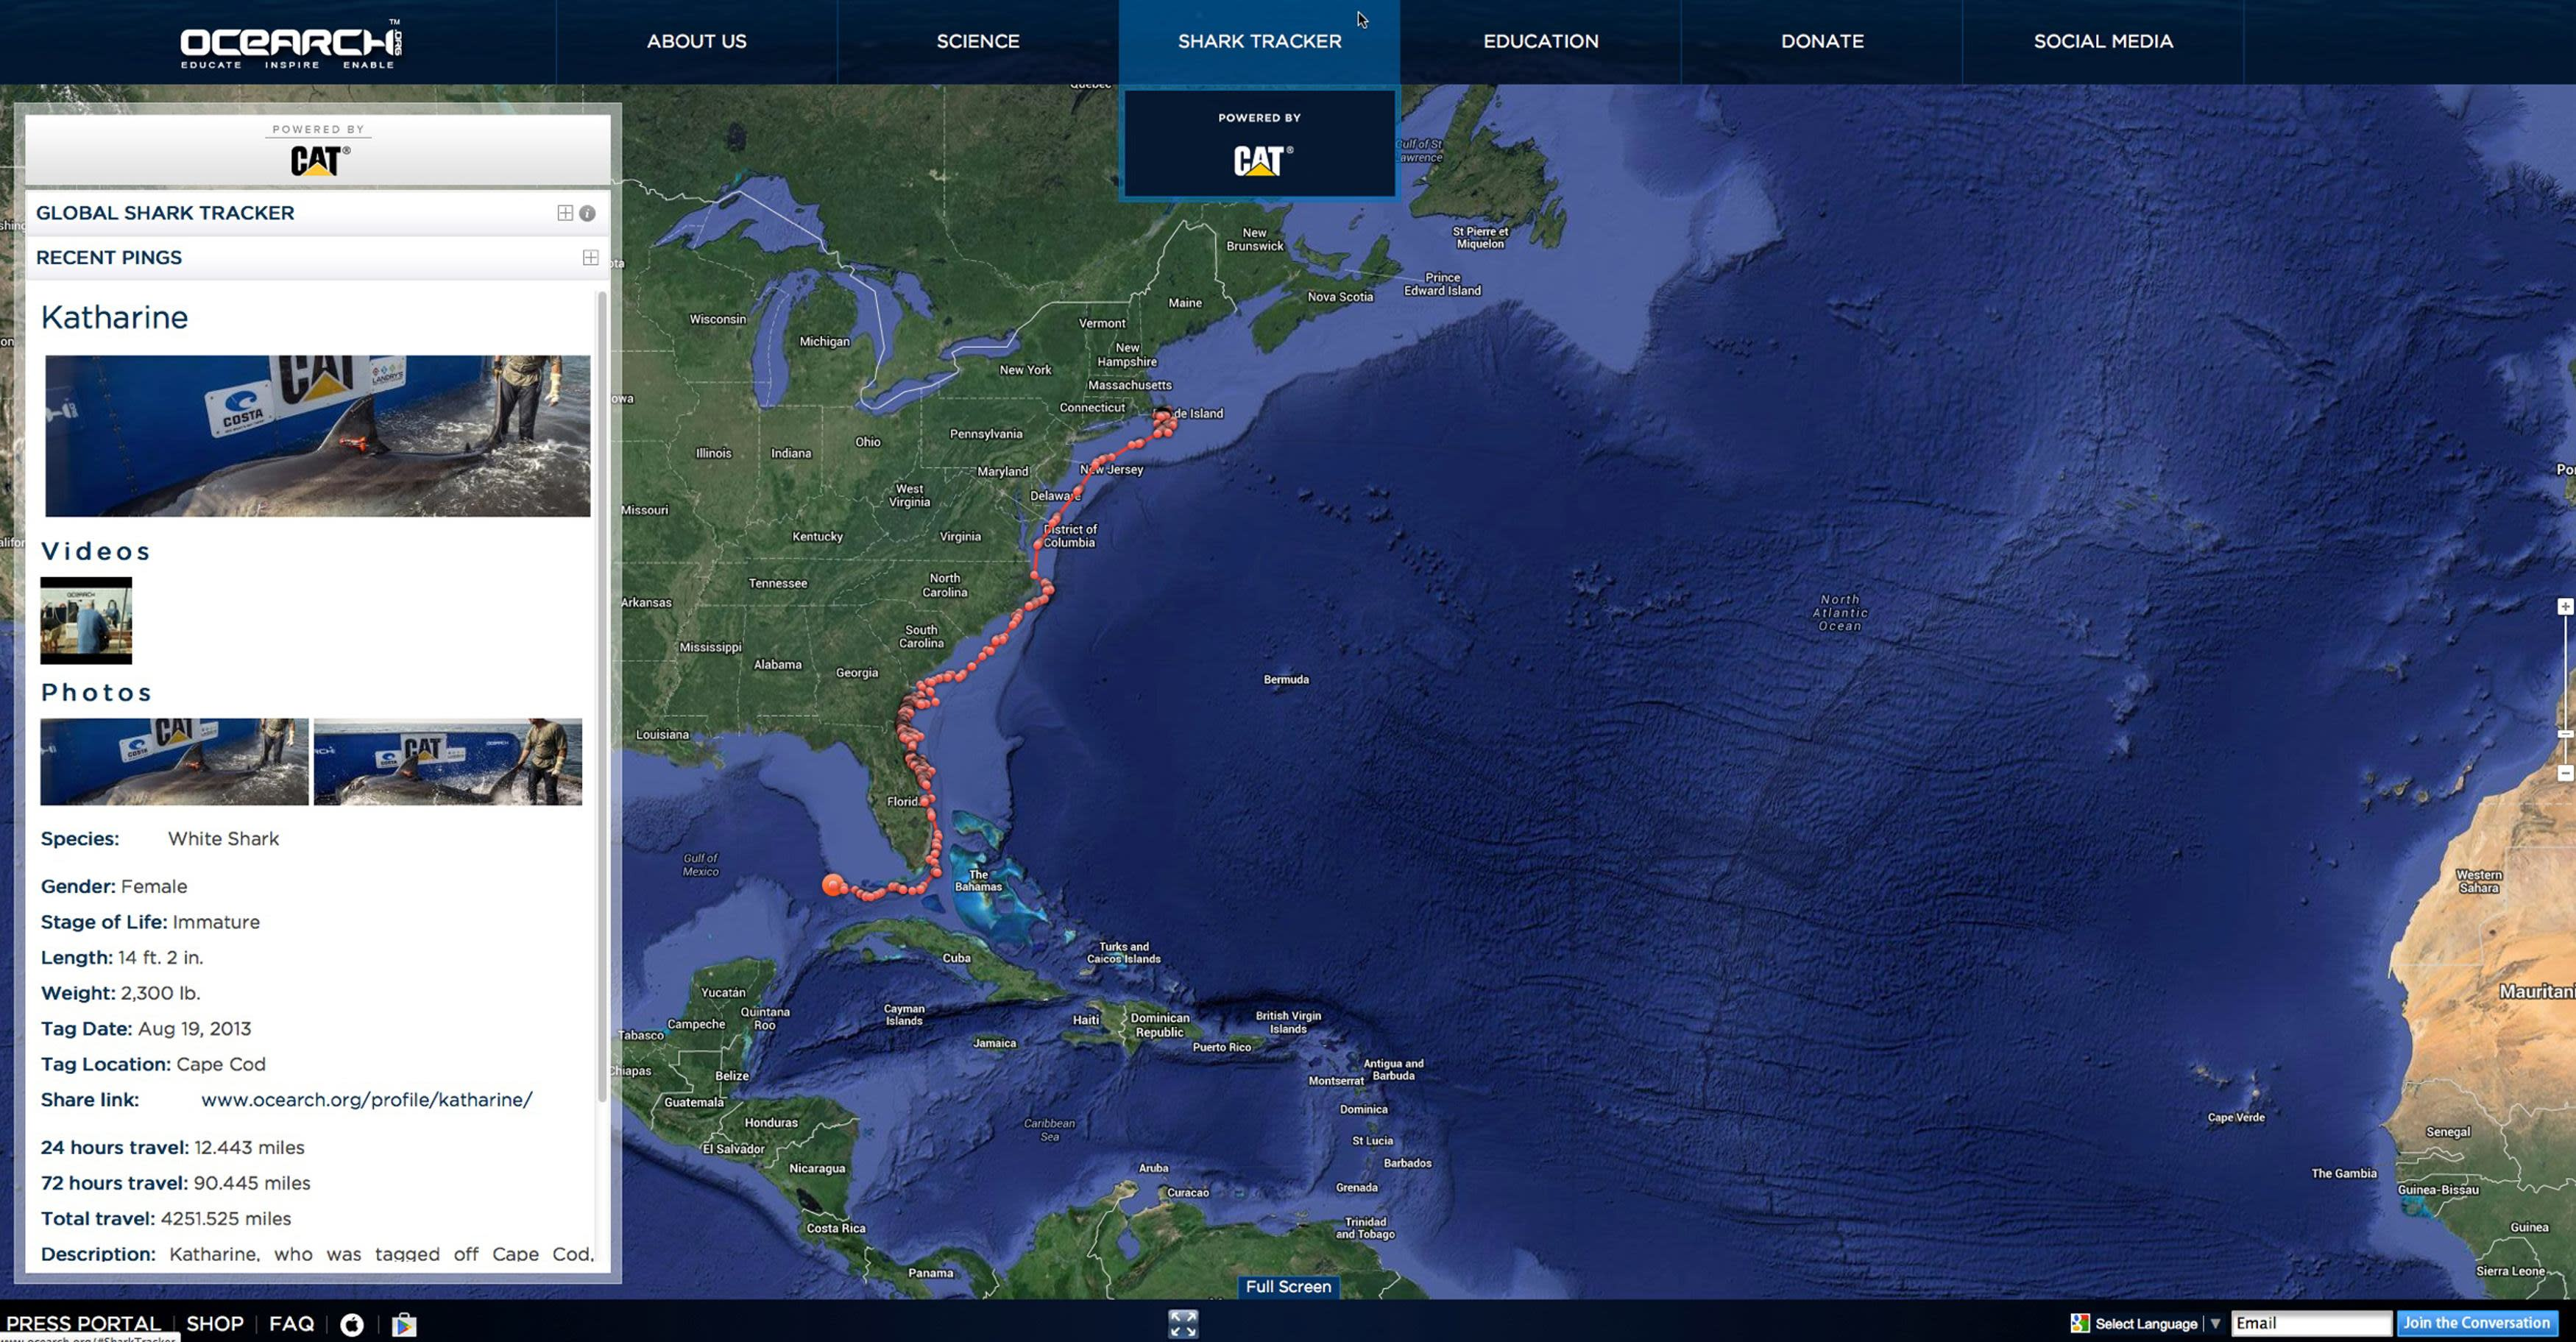 Researchers track migration of great white shark around Florida